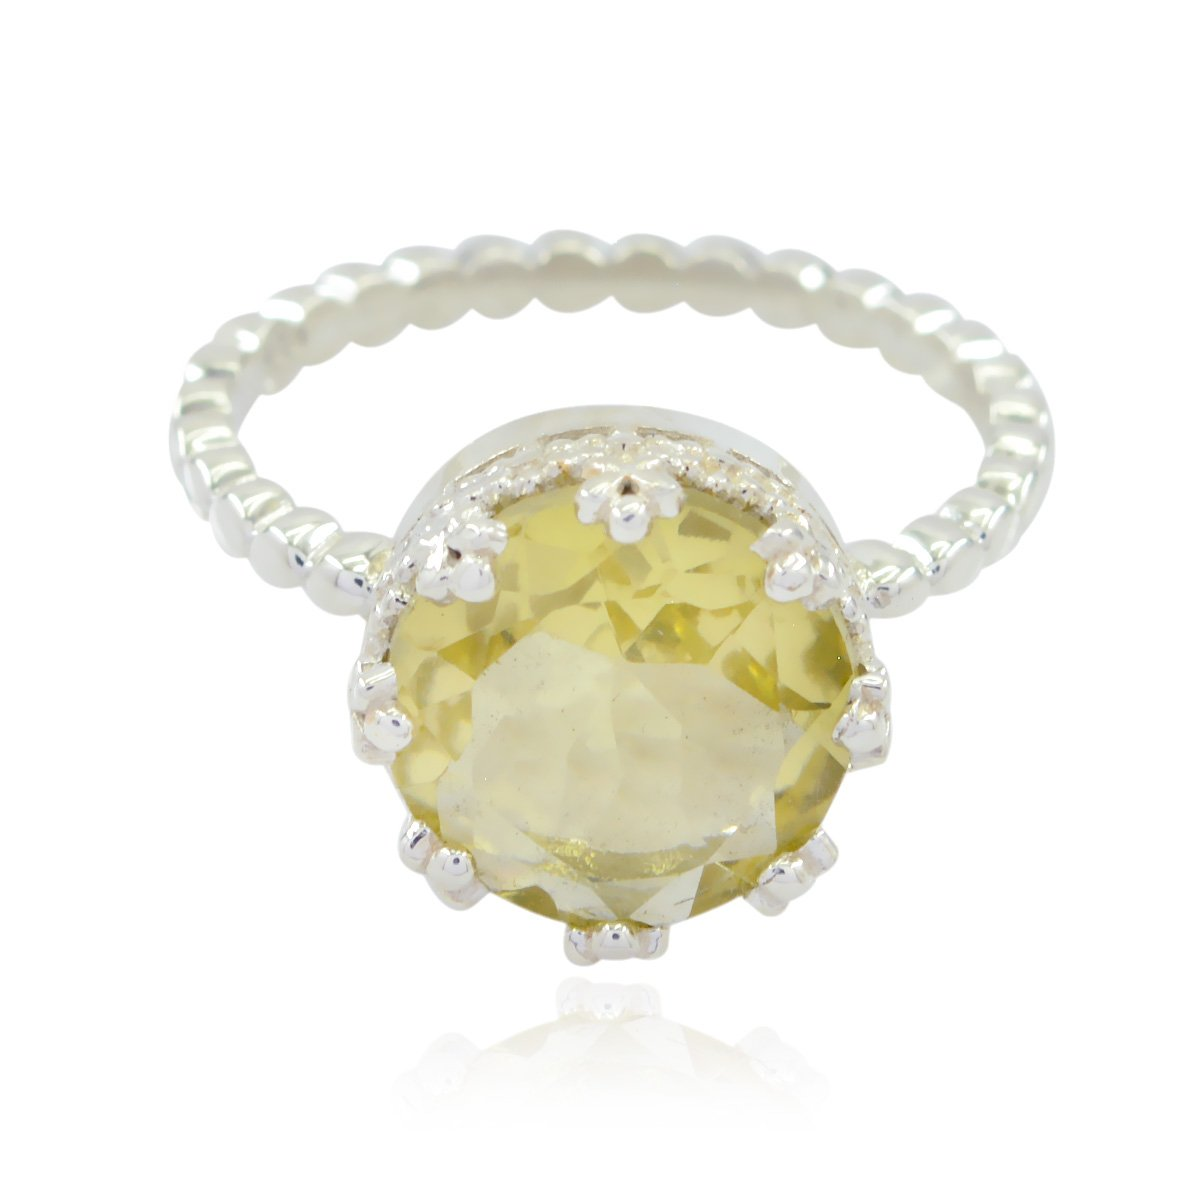 925 Silver Yellow Lemon Quartz Natural Gemstone Ring Natural Gemstone Round Faceted Lemon Quartz Rings Now Trending Items Gift for Fathers Day Stacking Ring